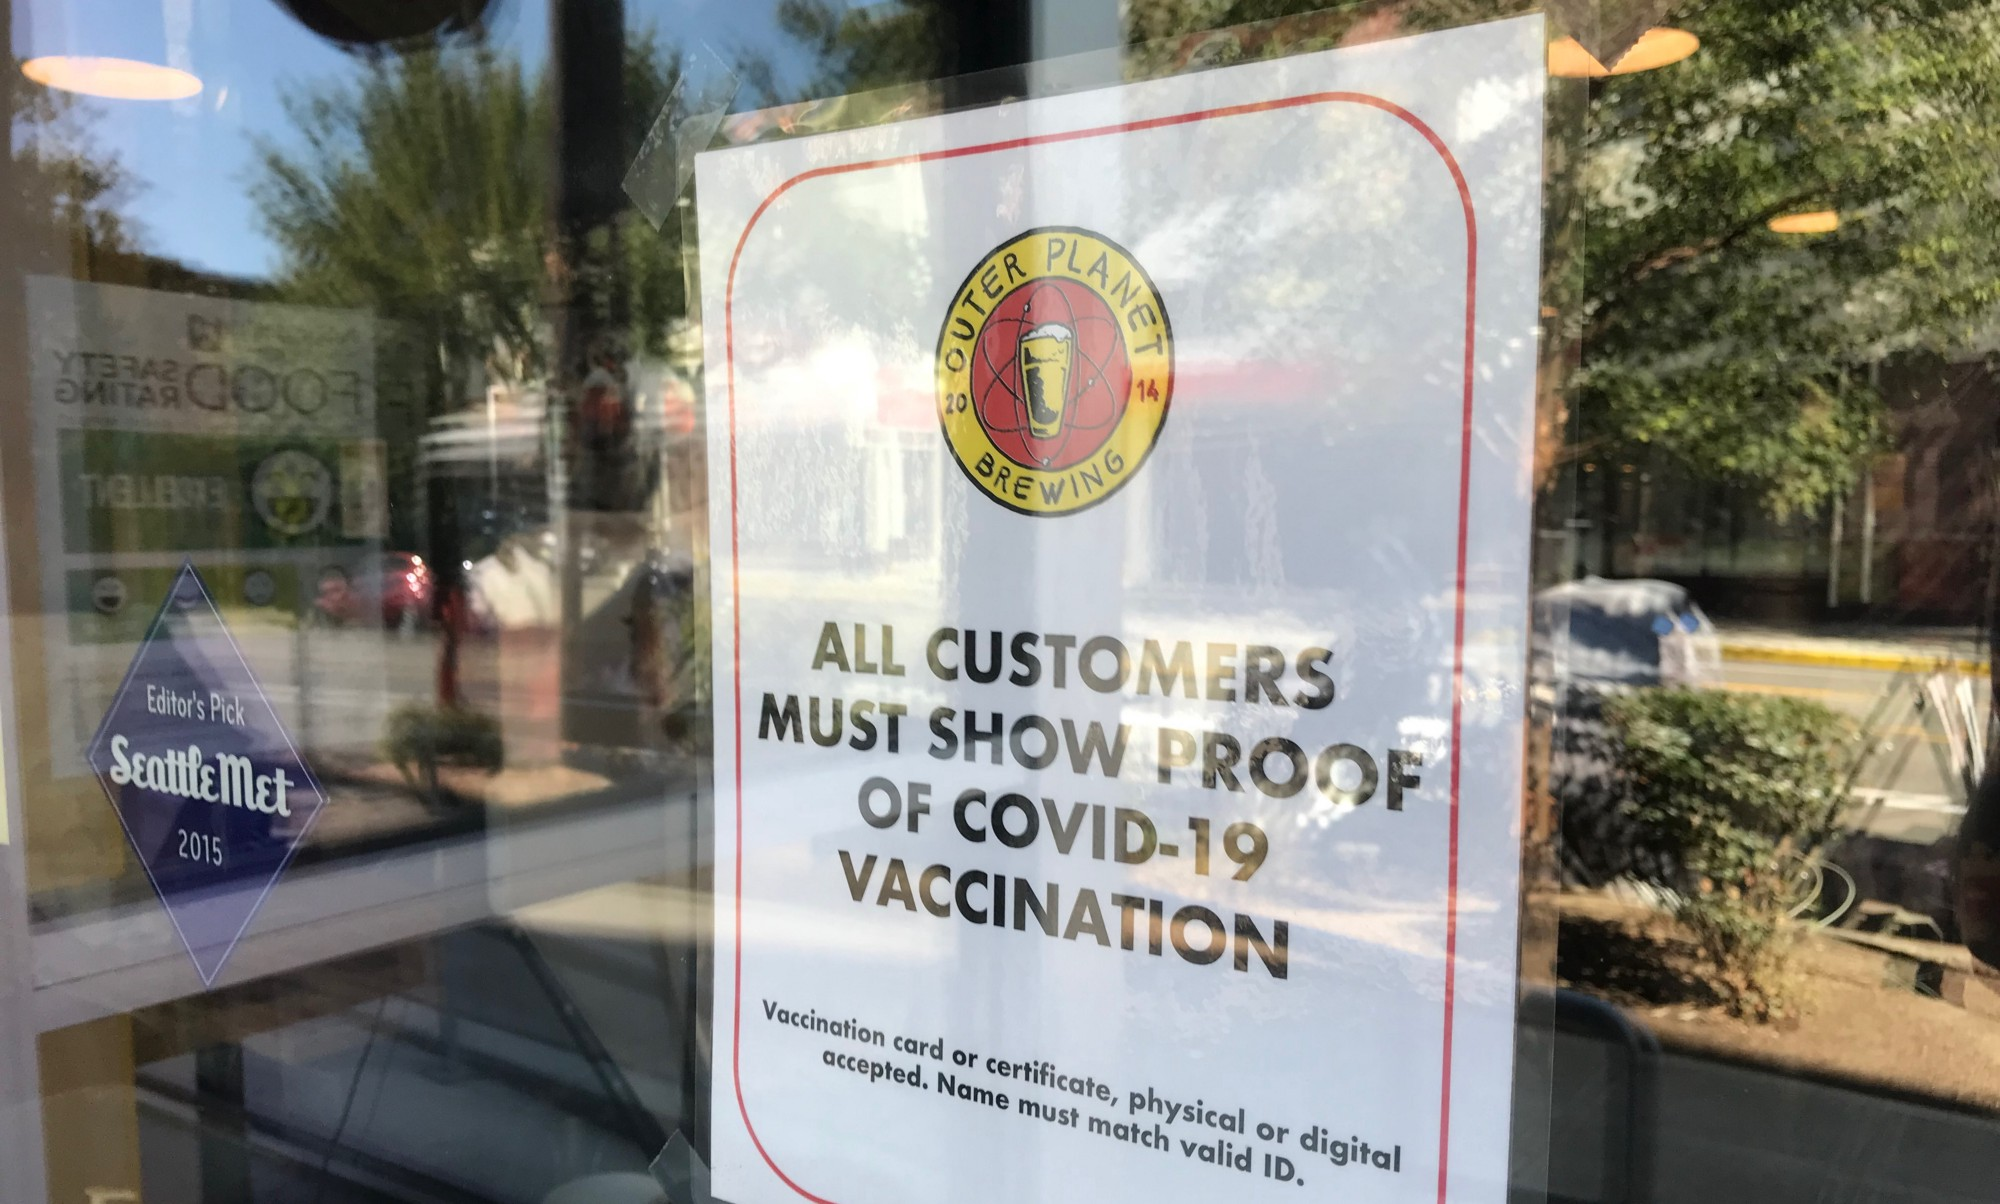 Sign on window at brewery advising patrons of COVID-19 vaccination requirement.